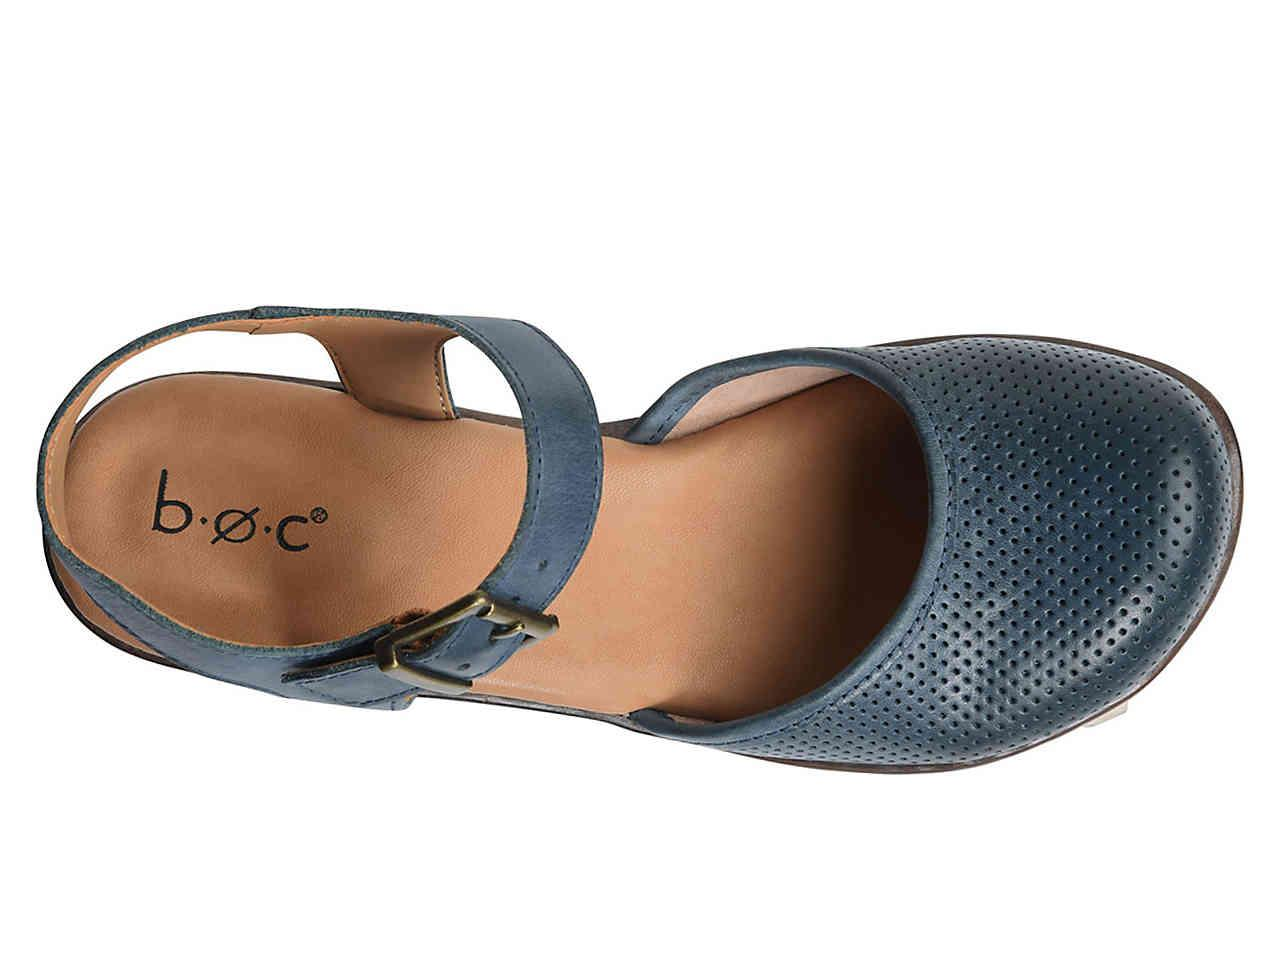 b.ø.c. Leather Stone Clog in Navy (Blue